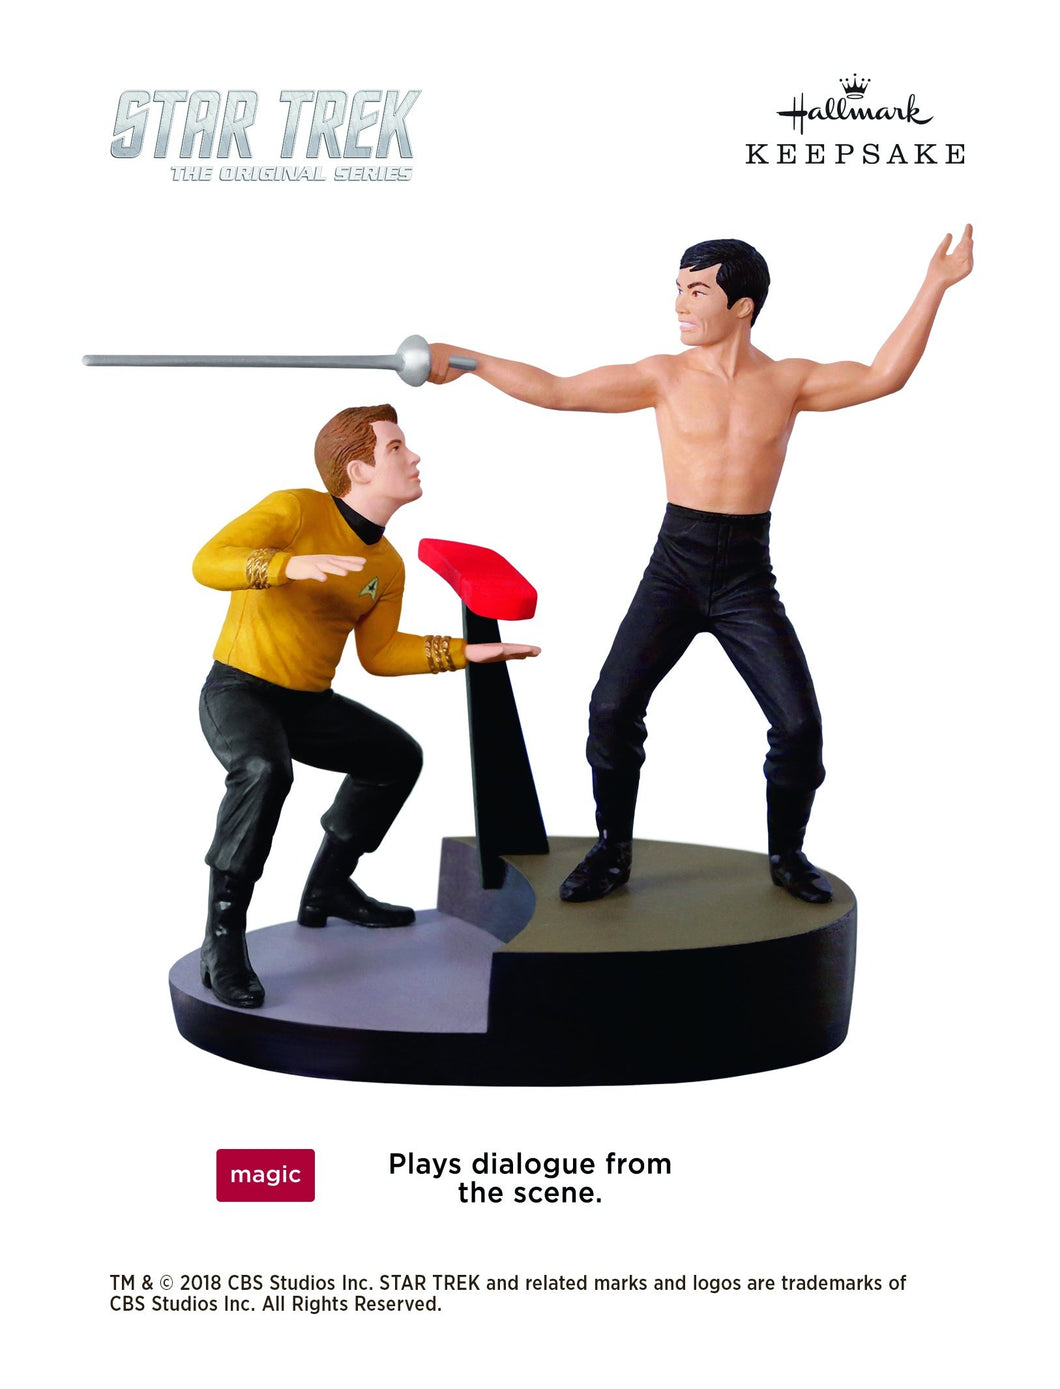 STAR TREK THE NAKED TIME